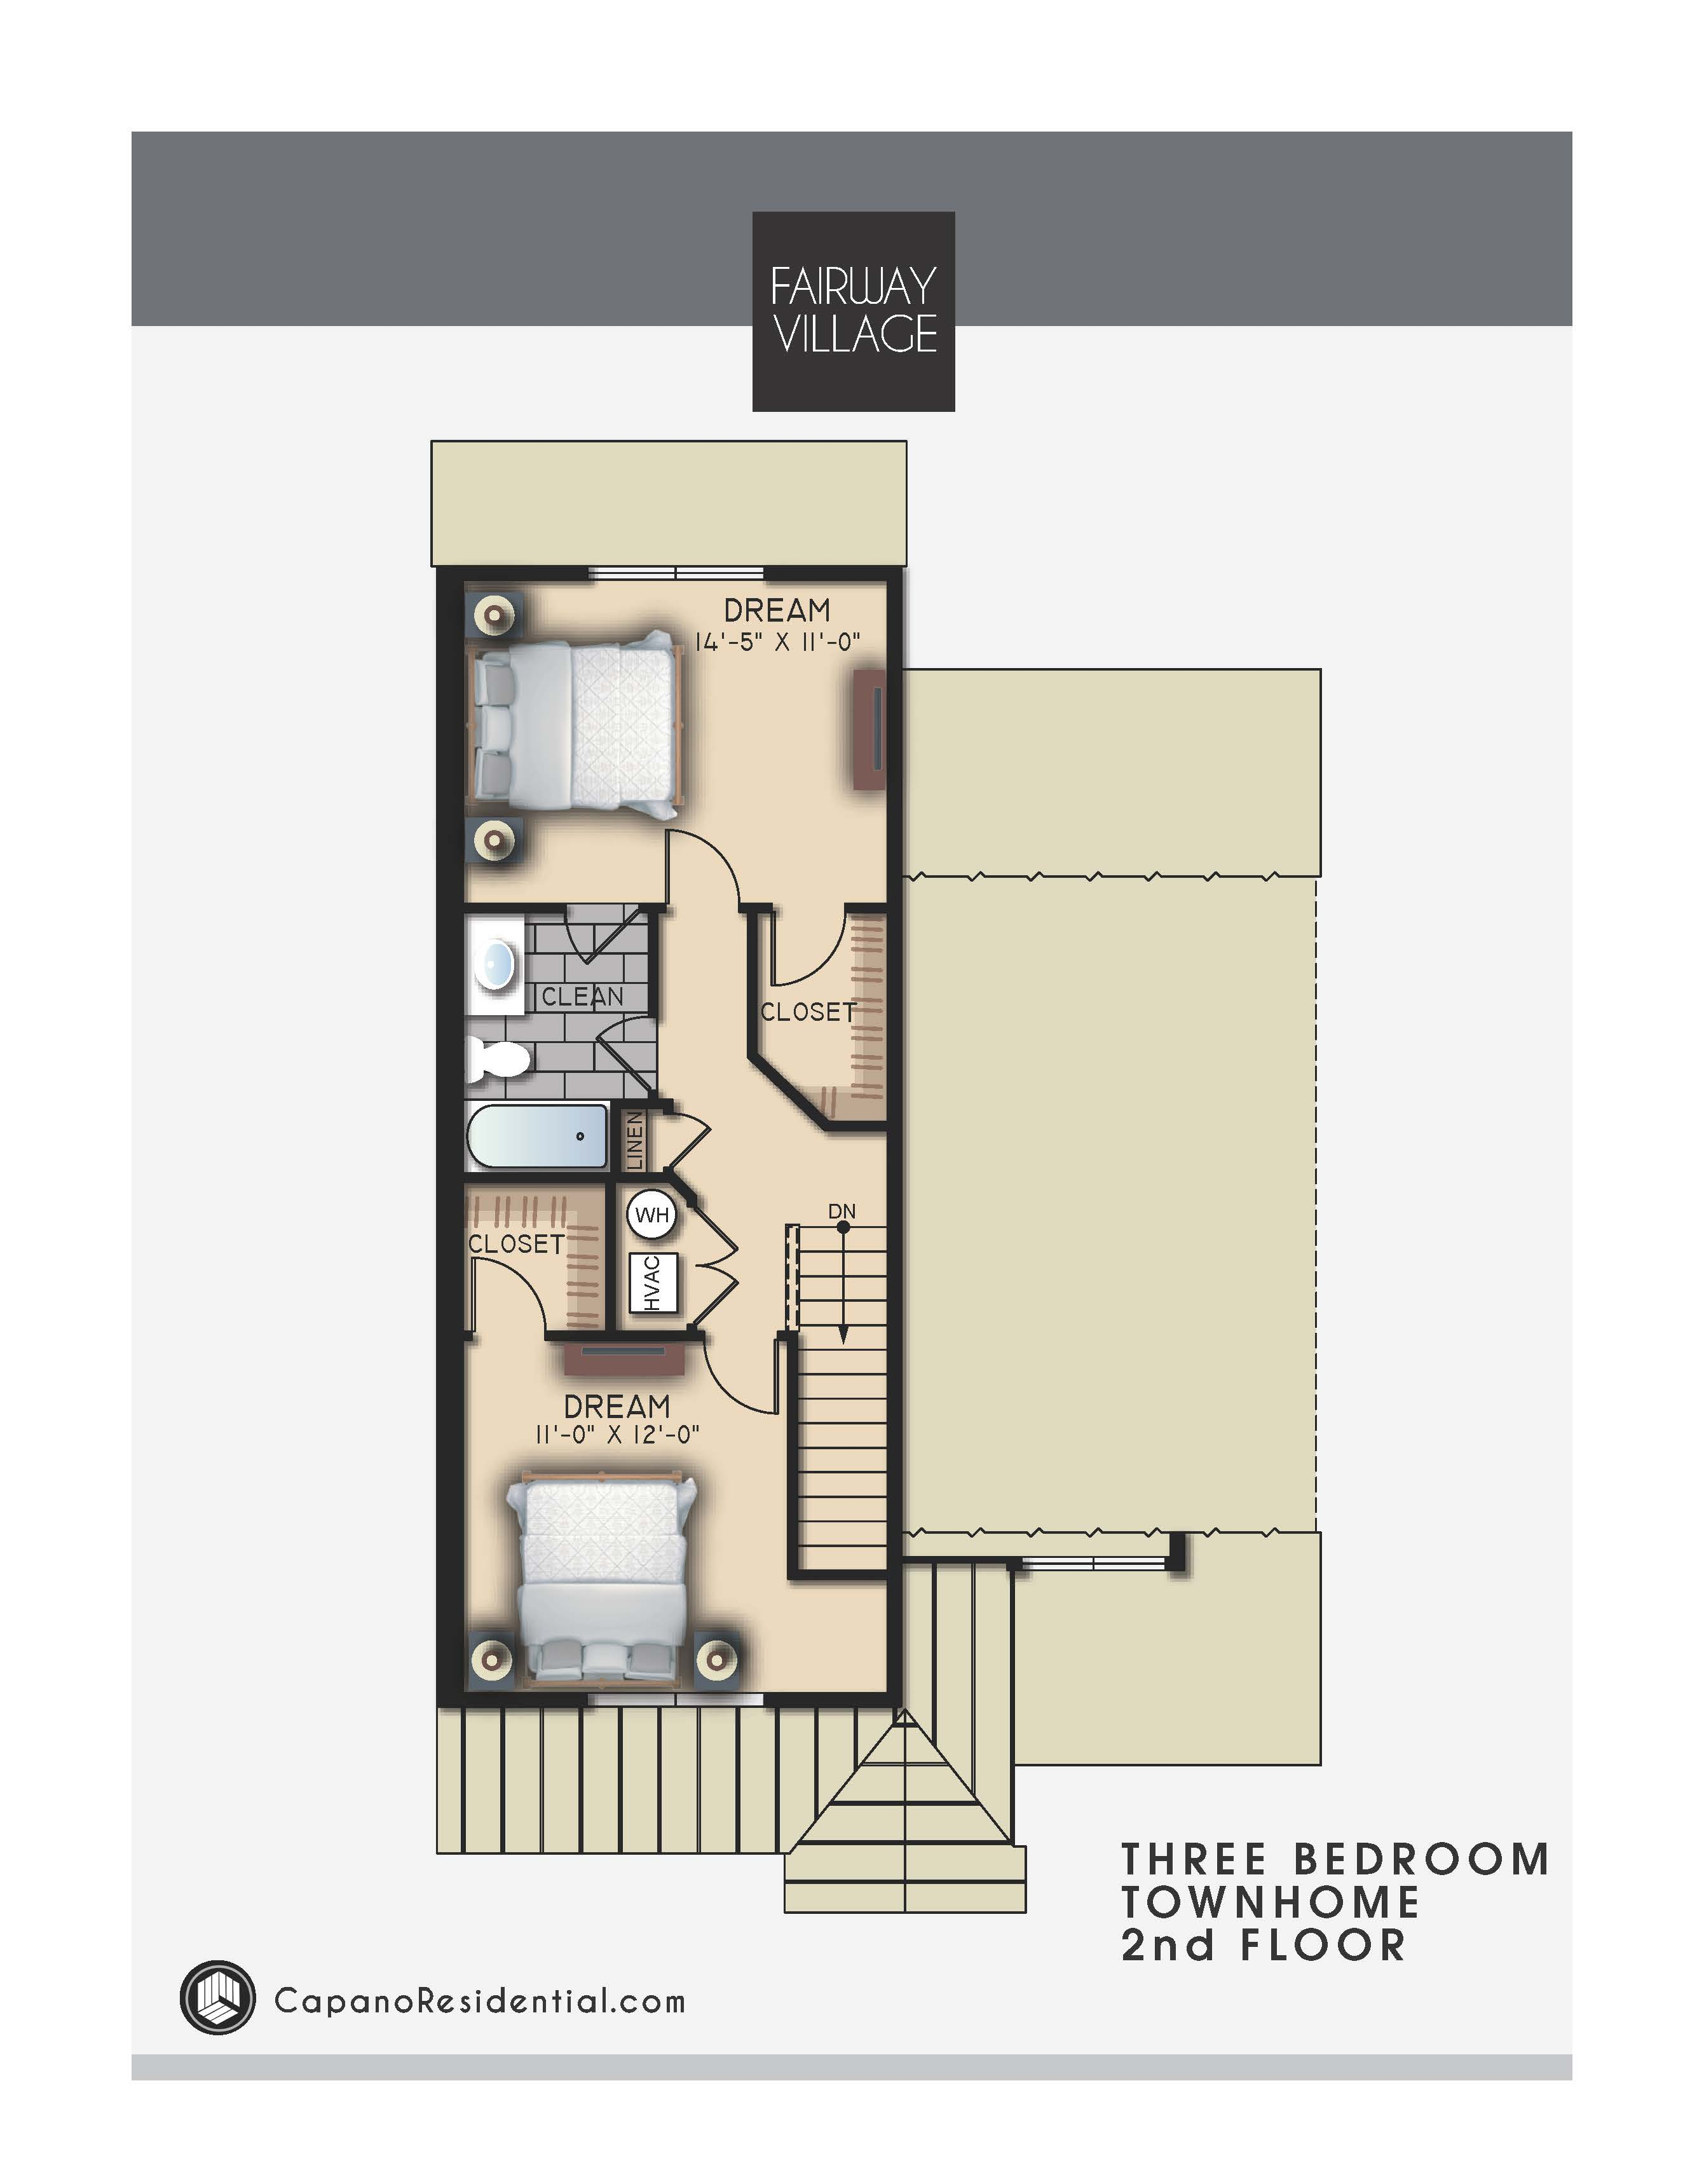 Stupendous Fairway Village Townhomes Capano Residential Home Interior And Landscaping Transignezvosmurscom